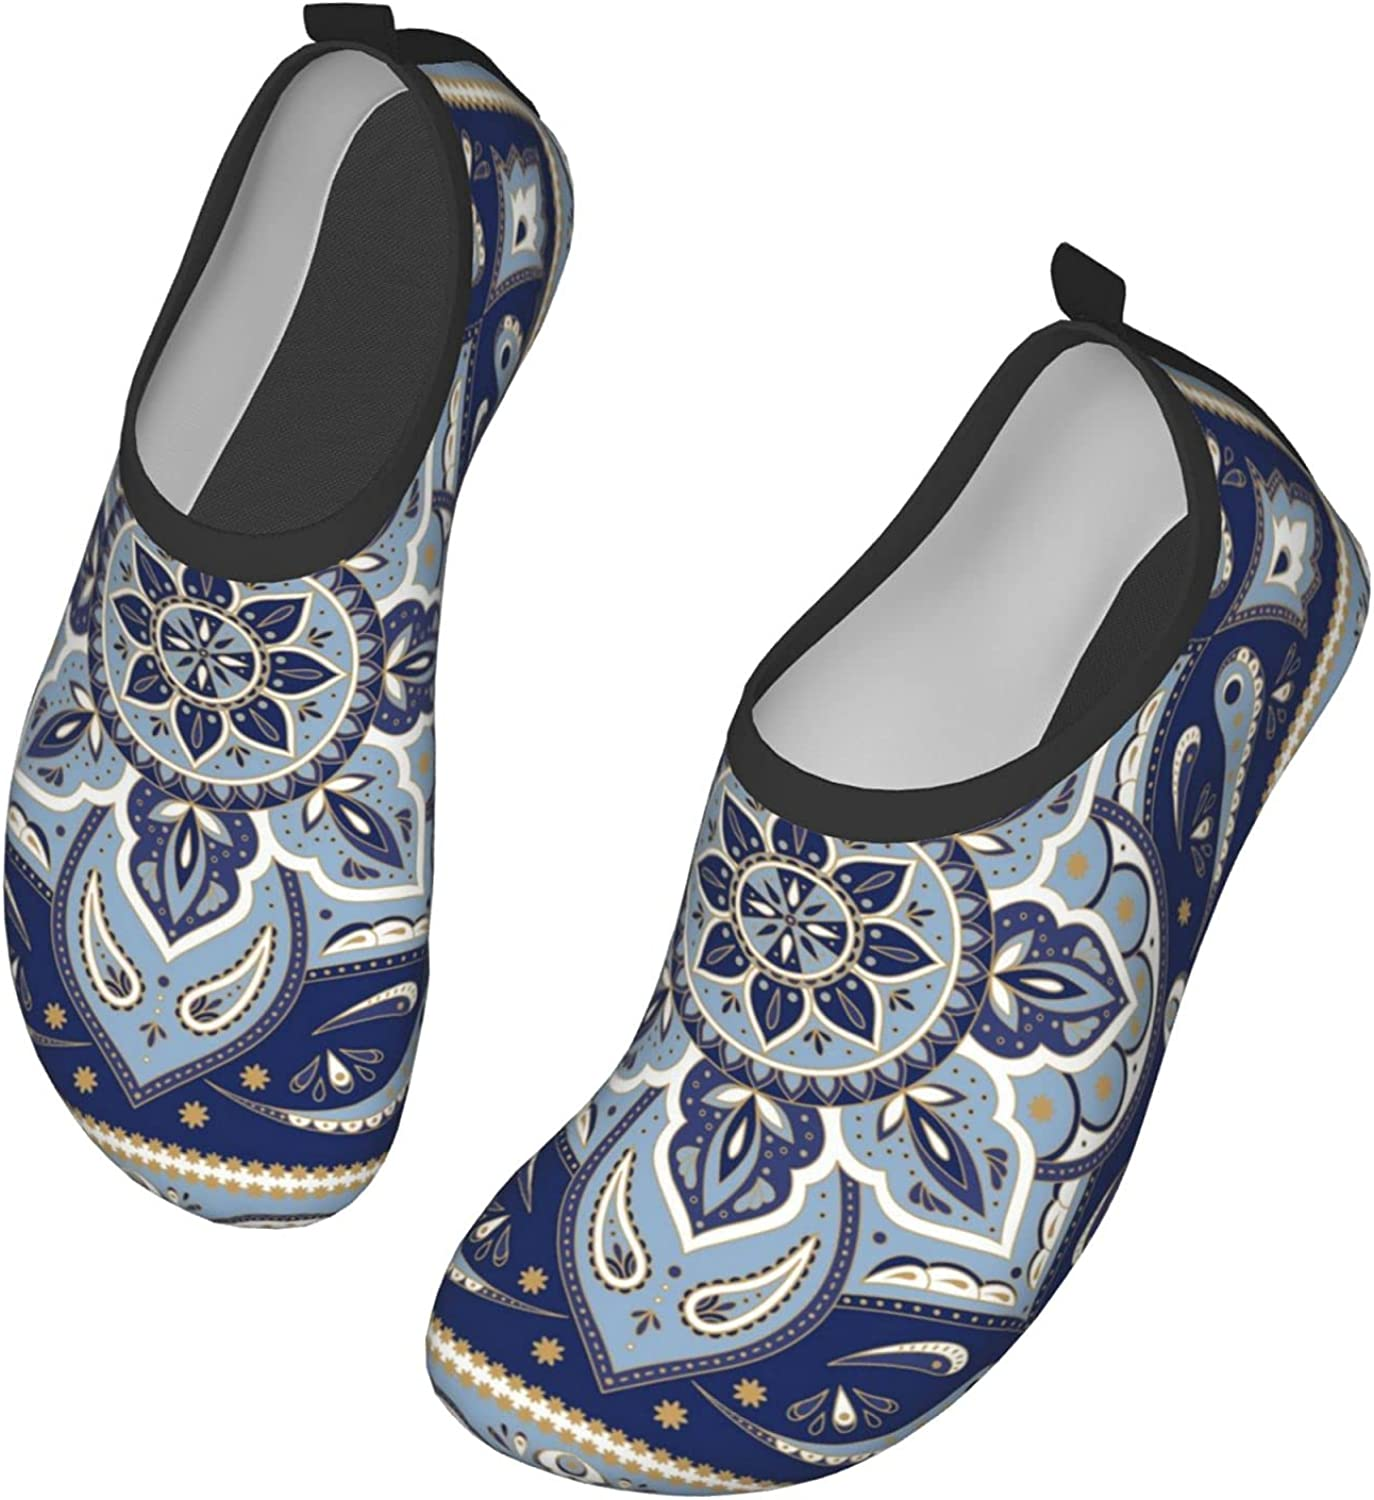 Floral Indian Paisley Water Shoes Quick-Dry Aqua Yoga Socks Beach Swim Sports Outdoor Beach Pool Shoes for Women and Men 15 inch